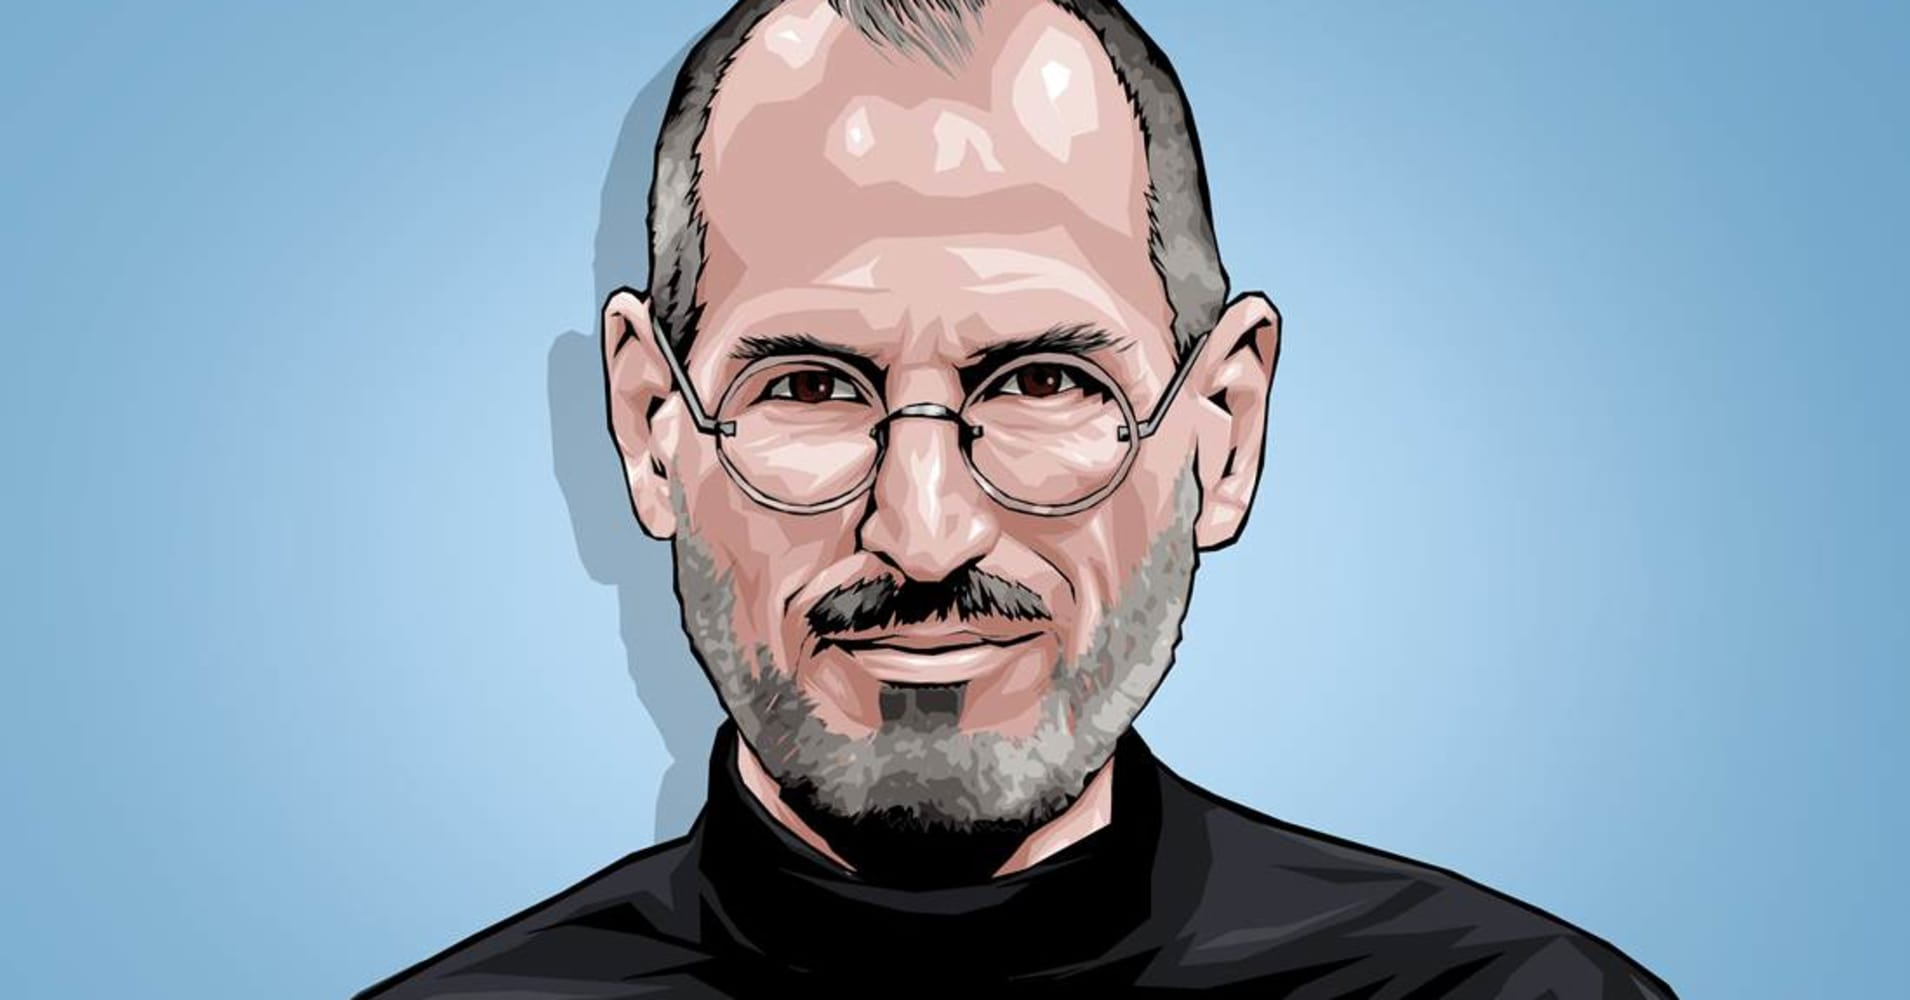 steven jobs The latest articles about steve jobs from mashable, the media and tech company.